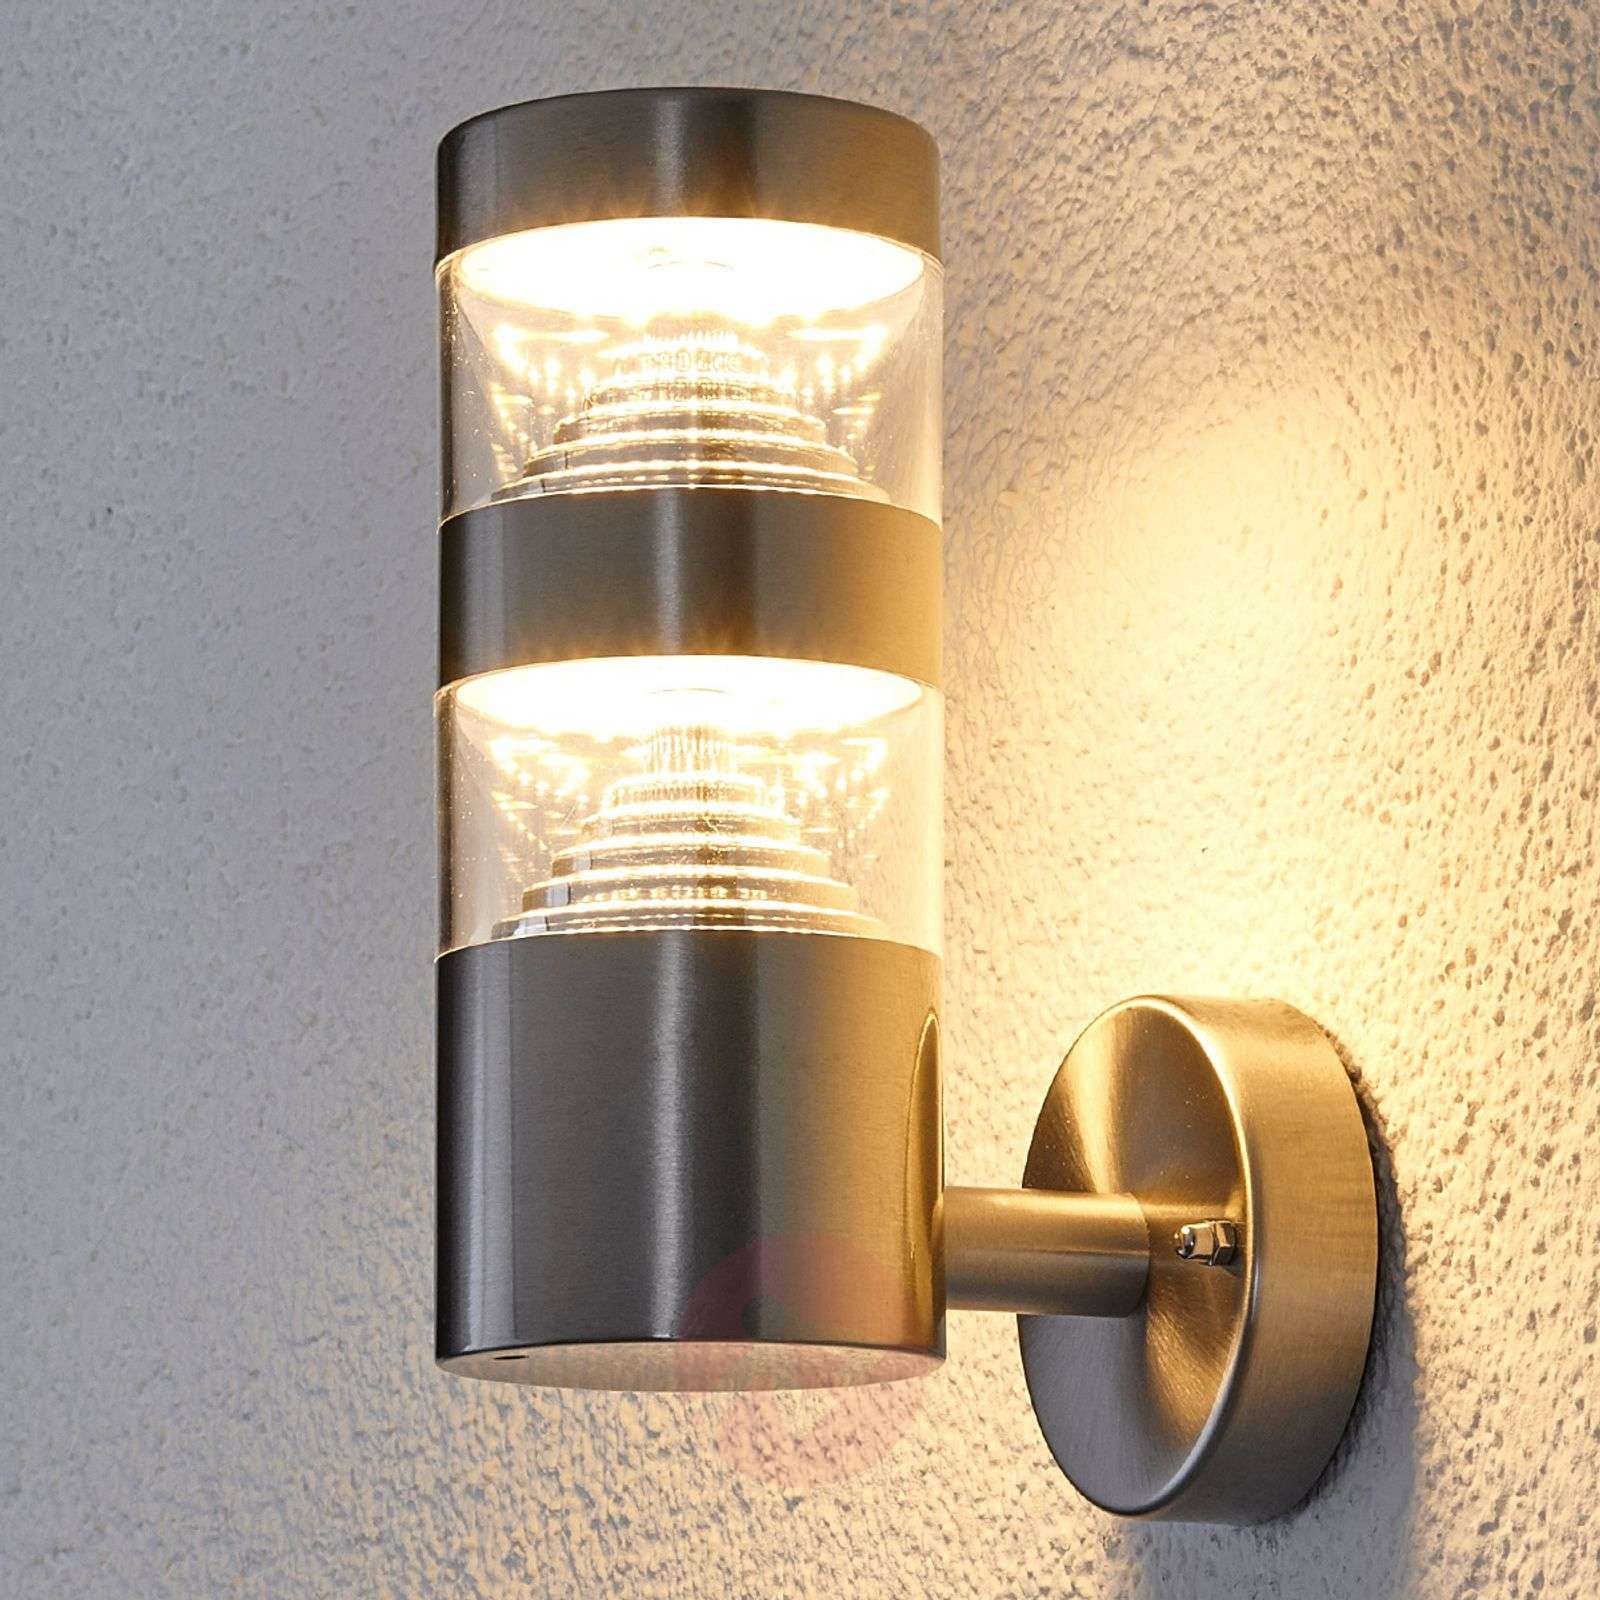 Outdoor wall lights lights stainless steel led outdoor wall light lanea aloadofball Image collections